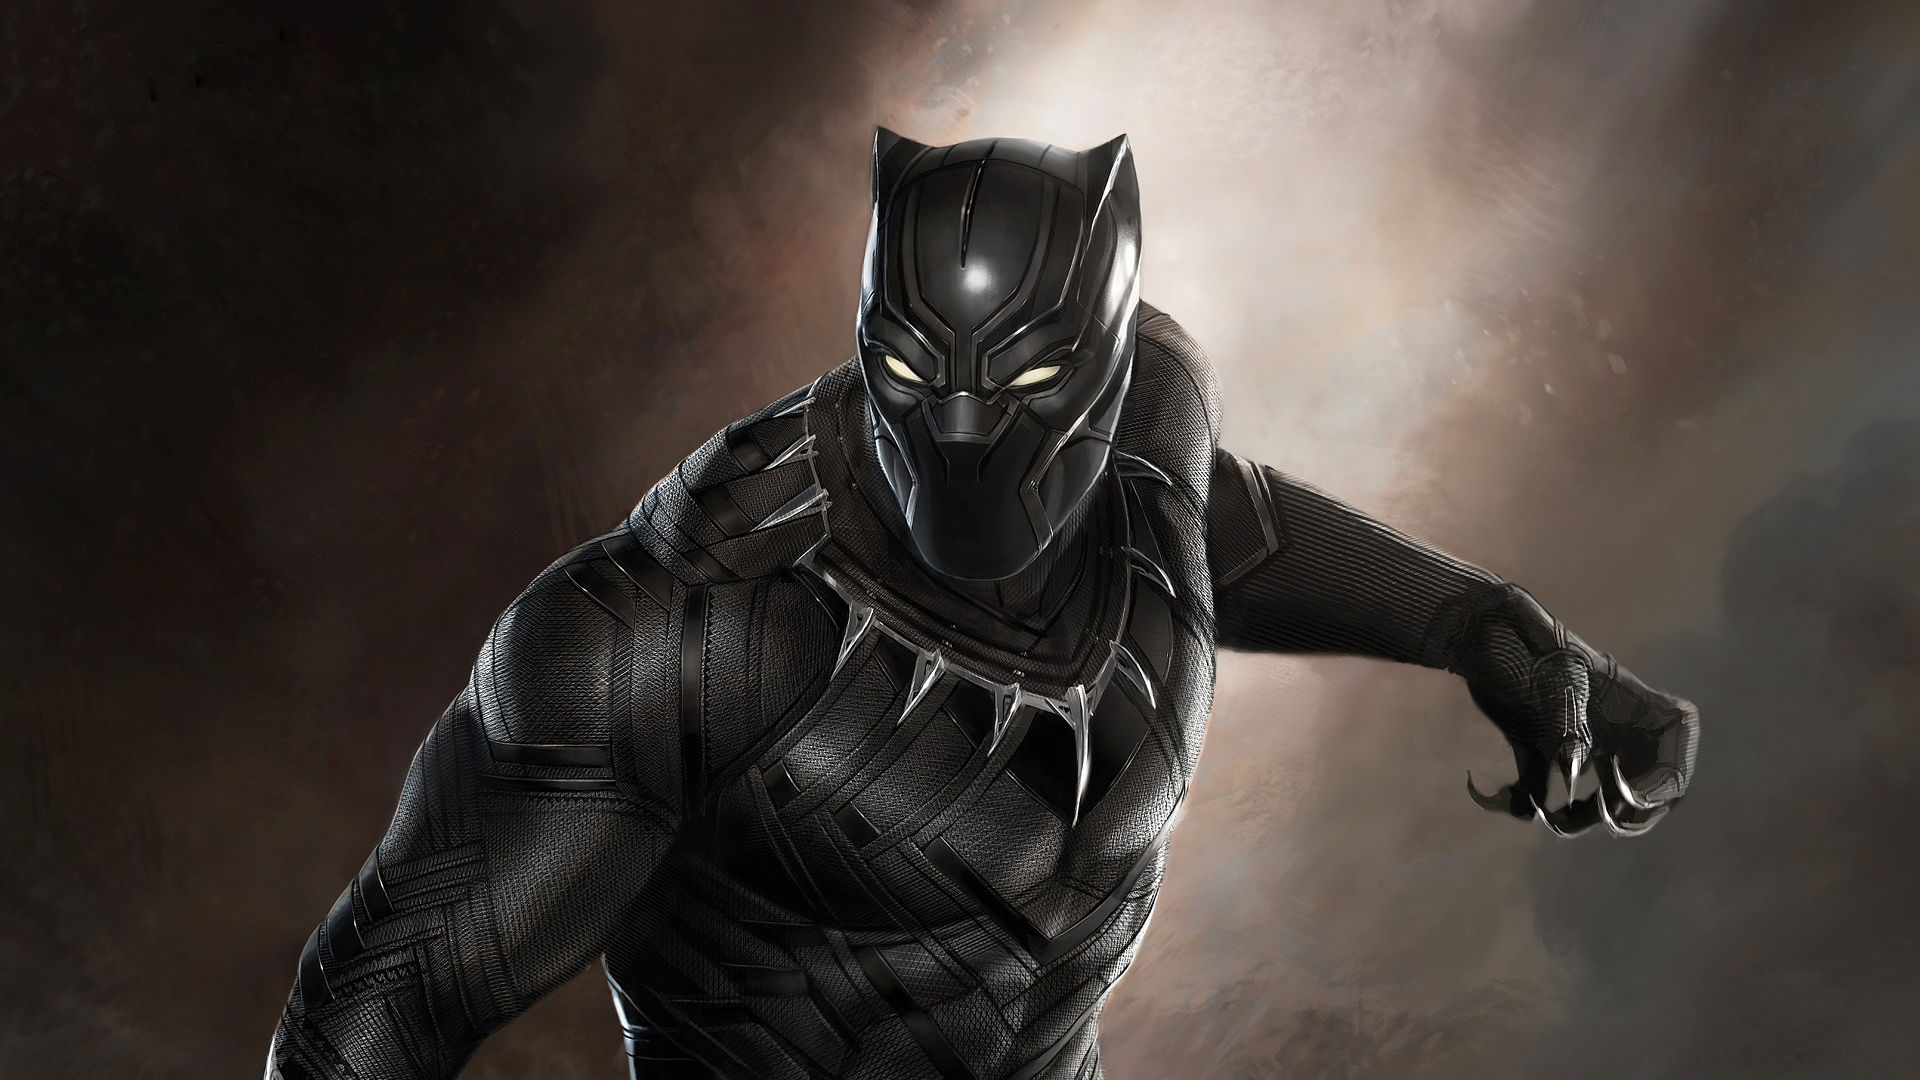 Marvel has confirmed that Creed director Ryan Coogler will helm the upcoming Phase Three entry, Black Panther. It is planned for February 16, 2018 release.